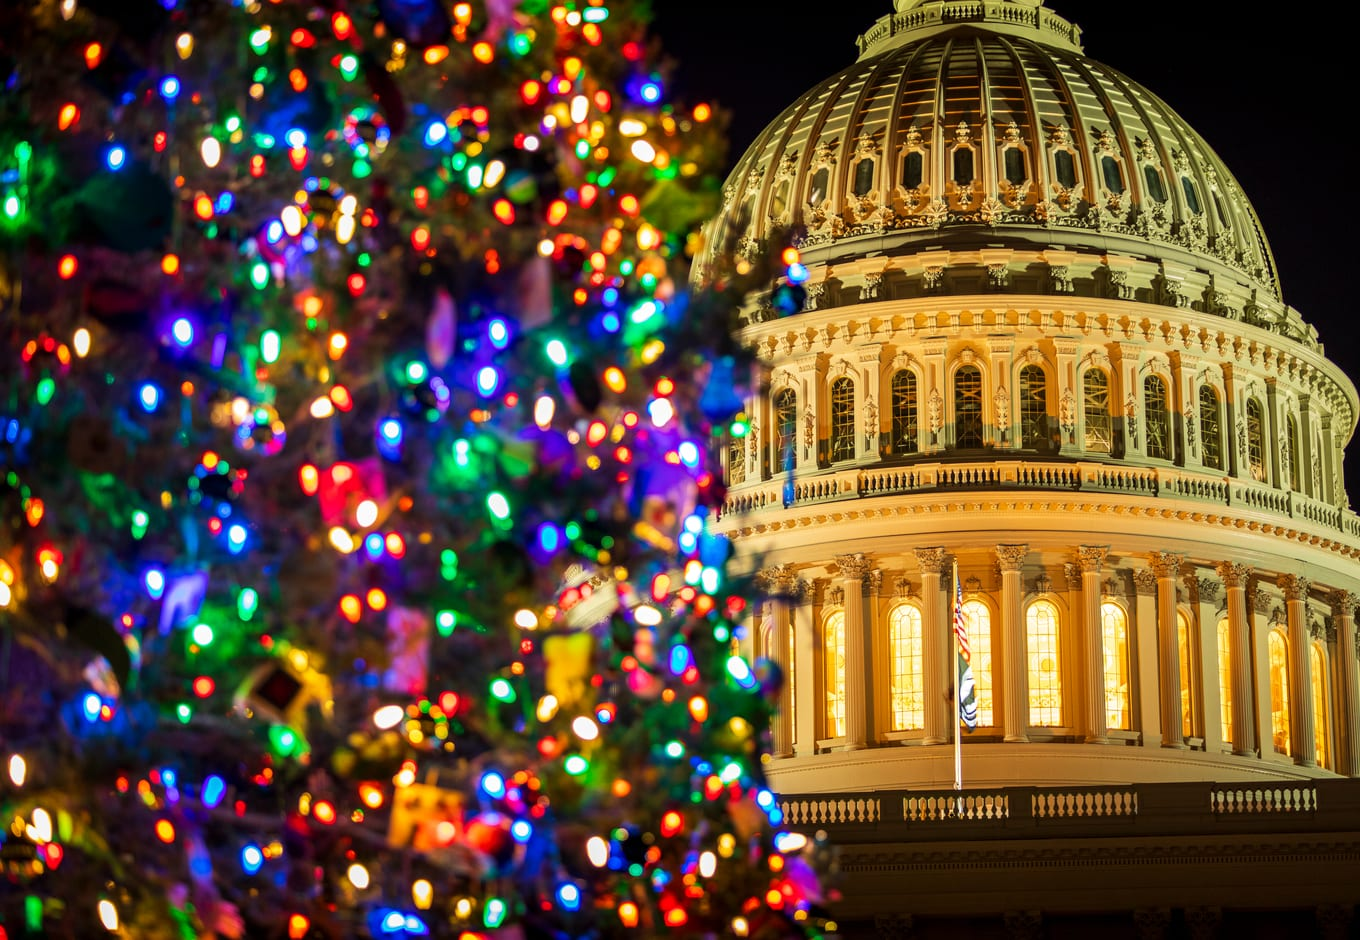 The United States Christmas Tree shining bright in front of the US Capitol Building in Washington, DC.